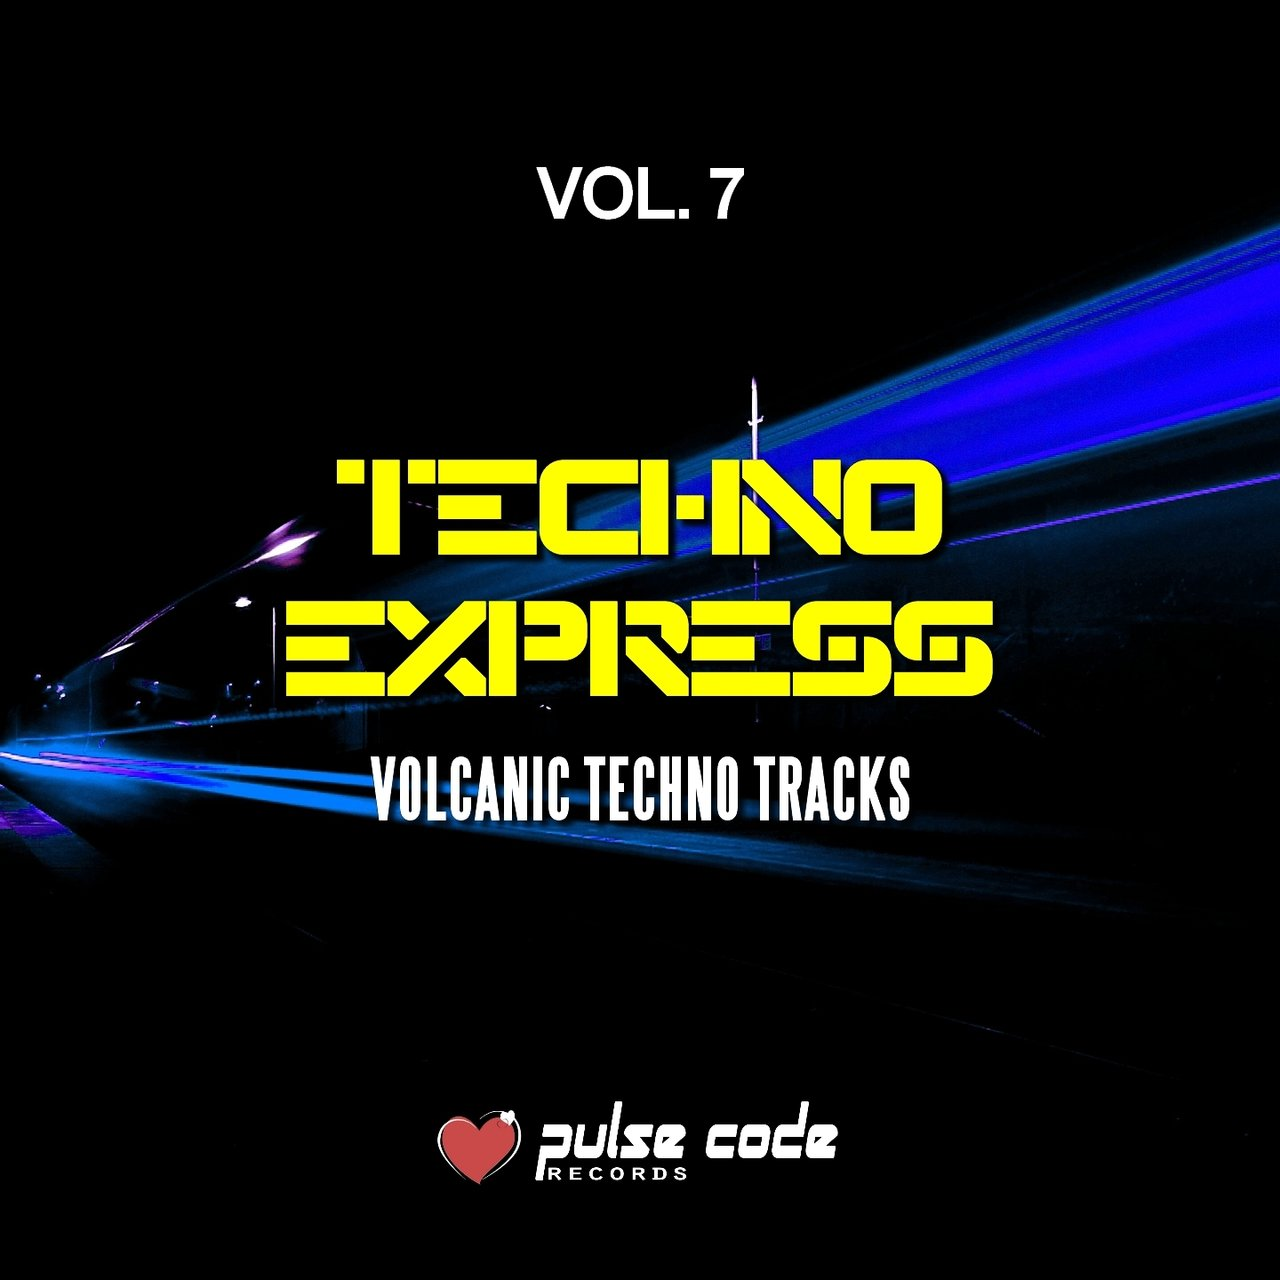 Techno Express, Vol. 7 (Volcanic Techno Tracks)